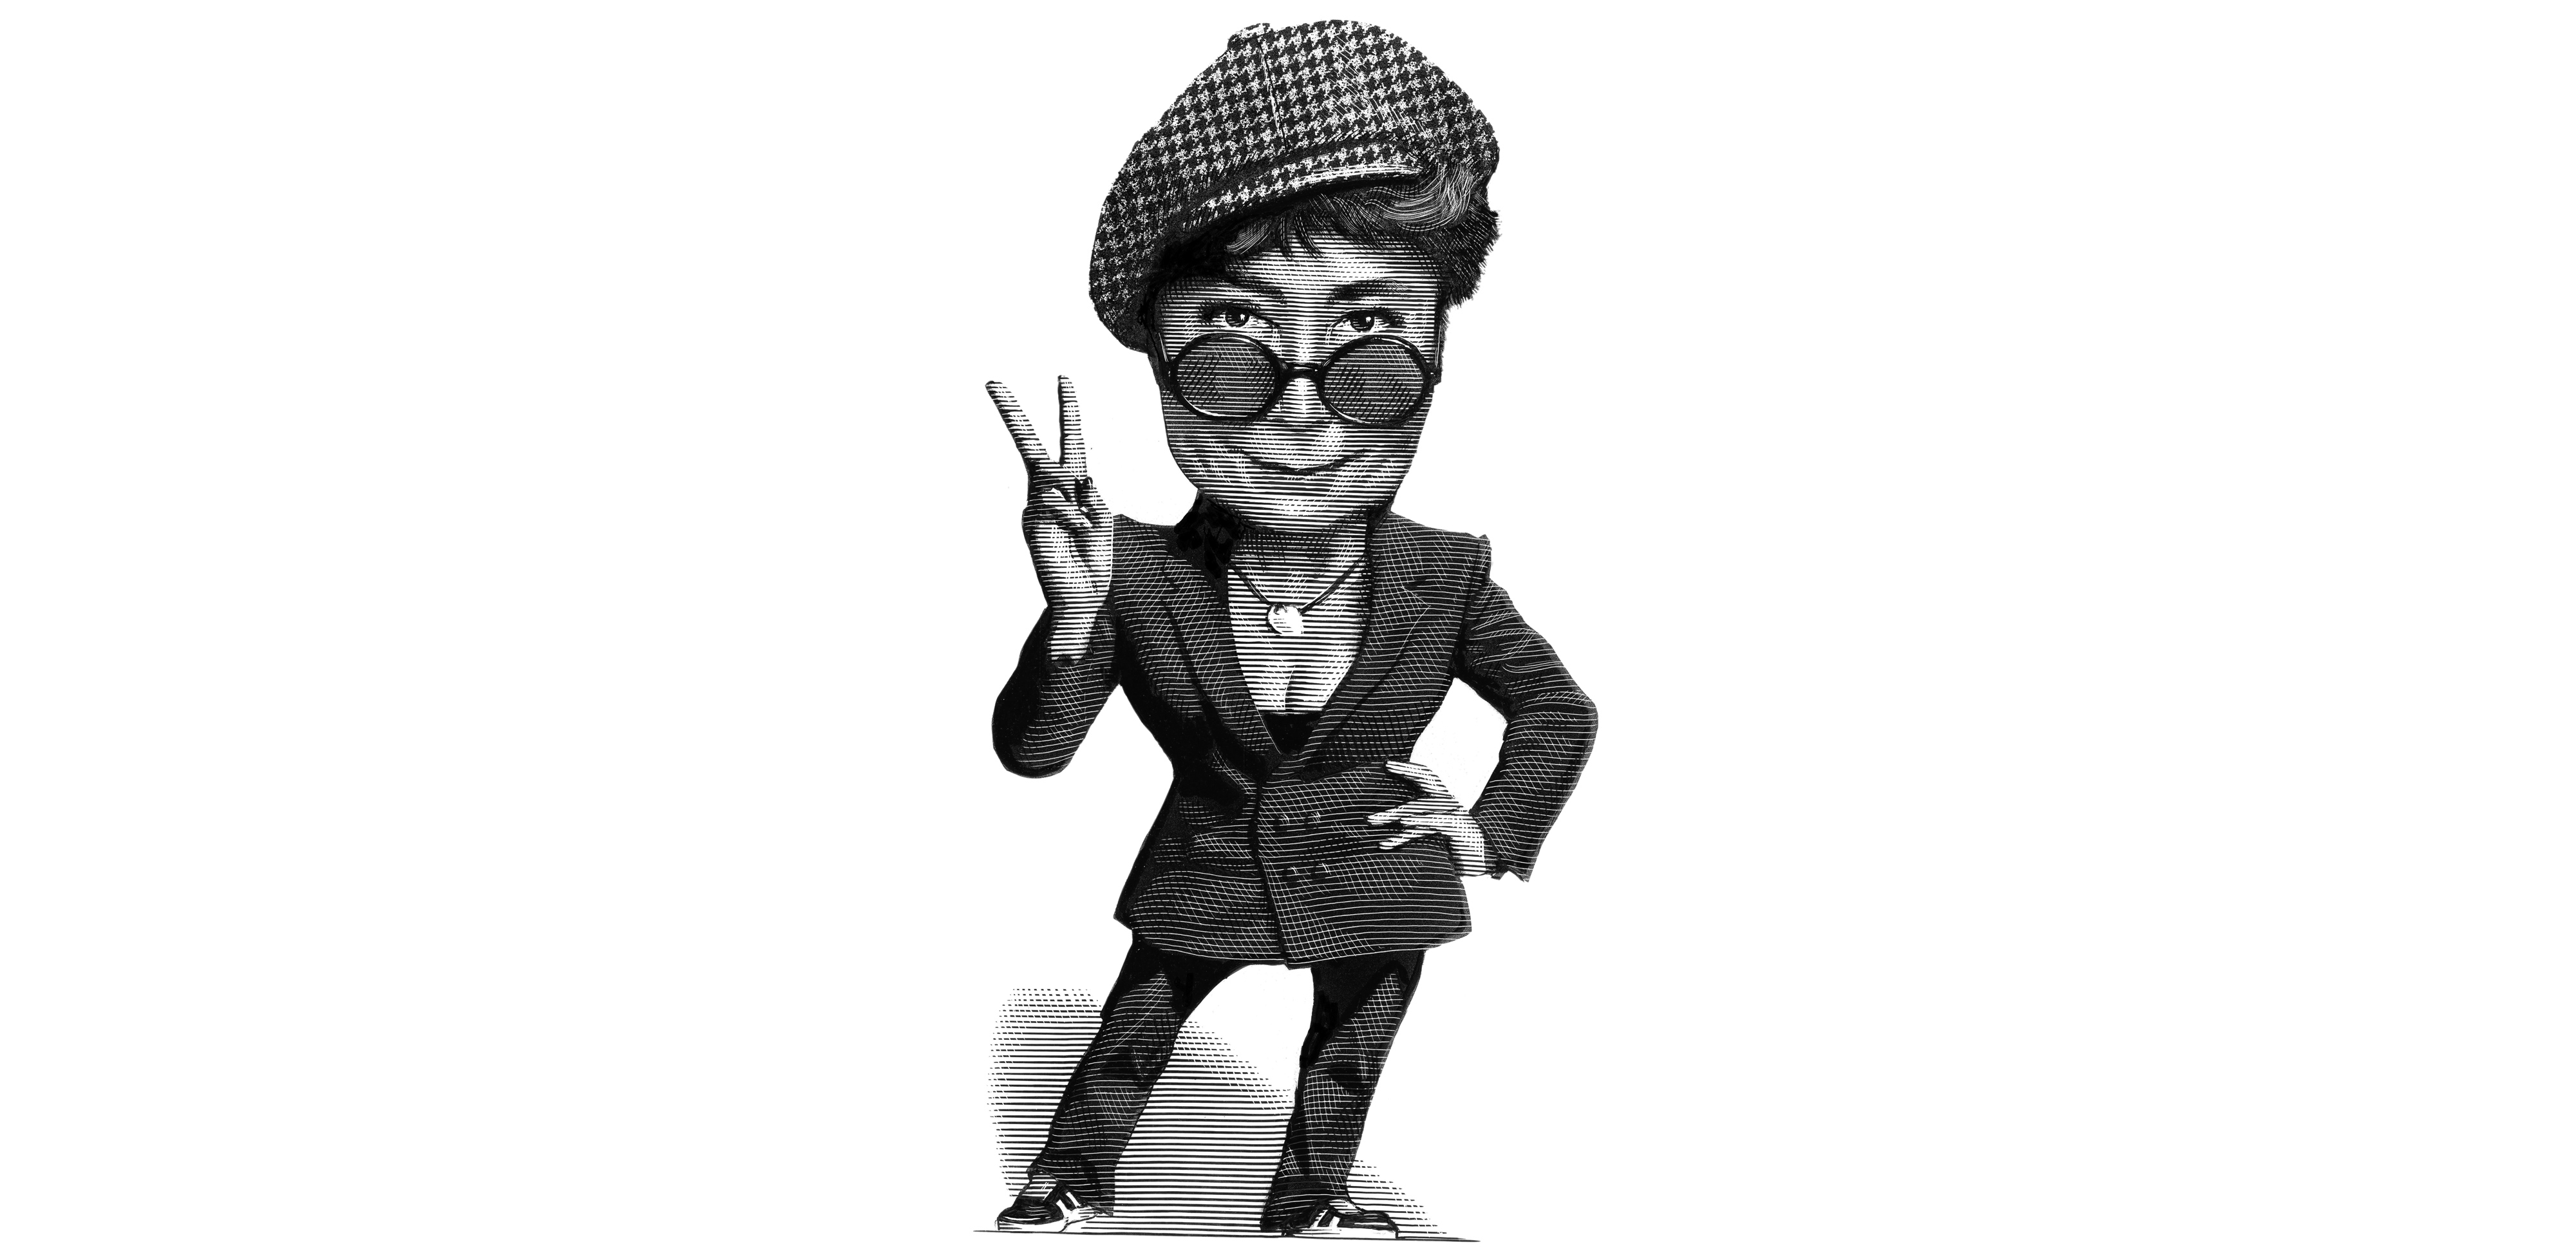 Yoko Ono On Bowie Memories How Meeting John Lennon Saved Her Rolling Stone